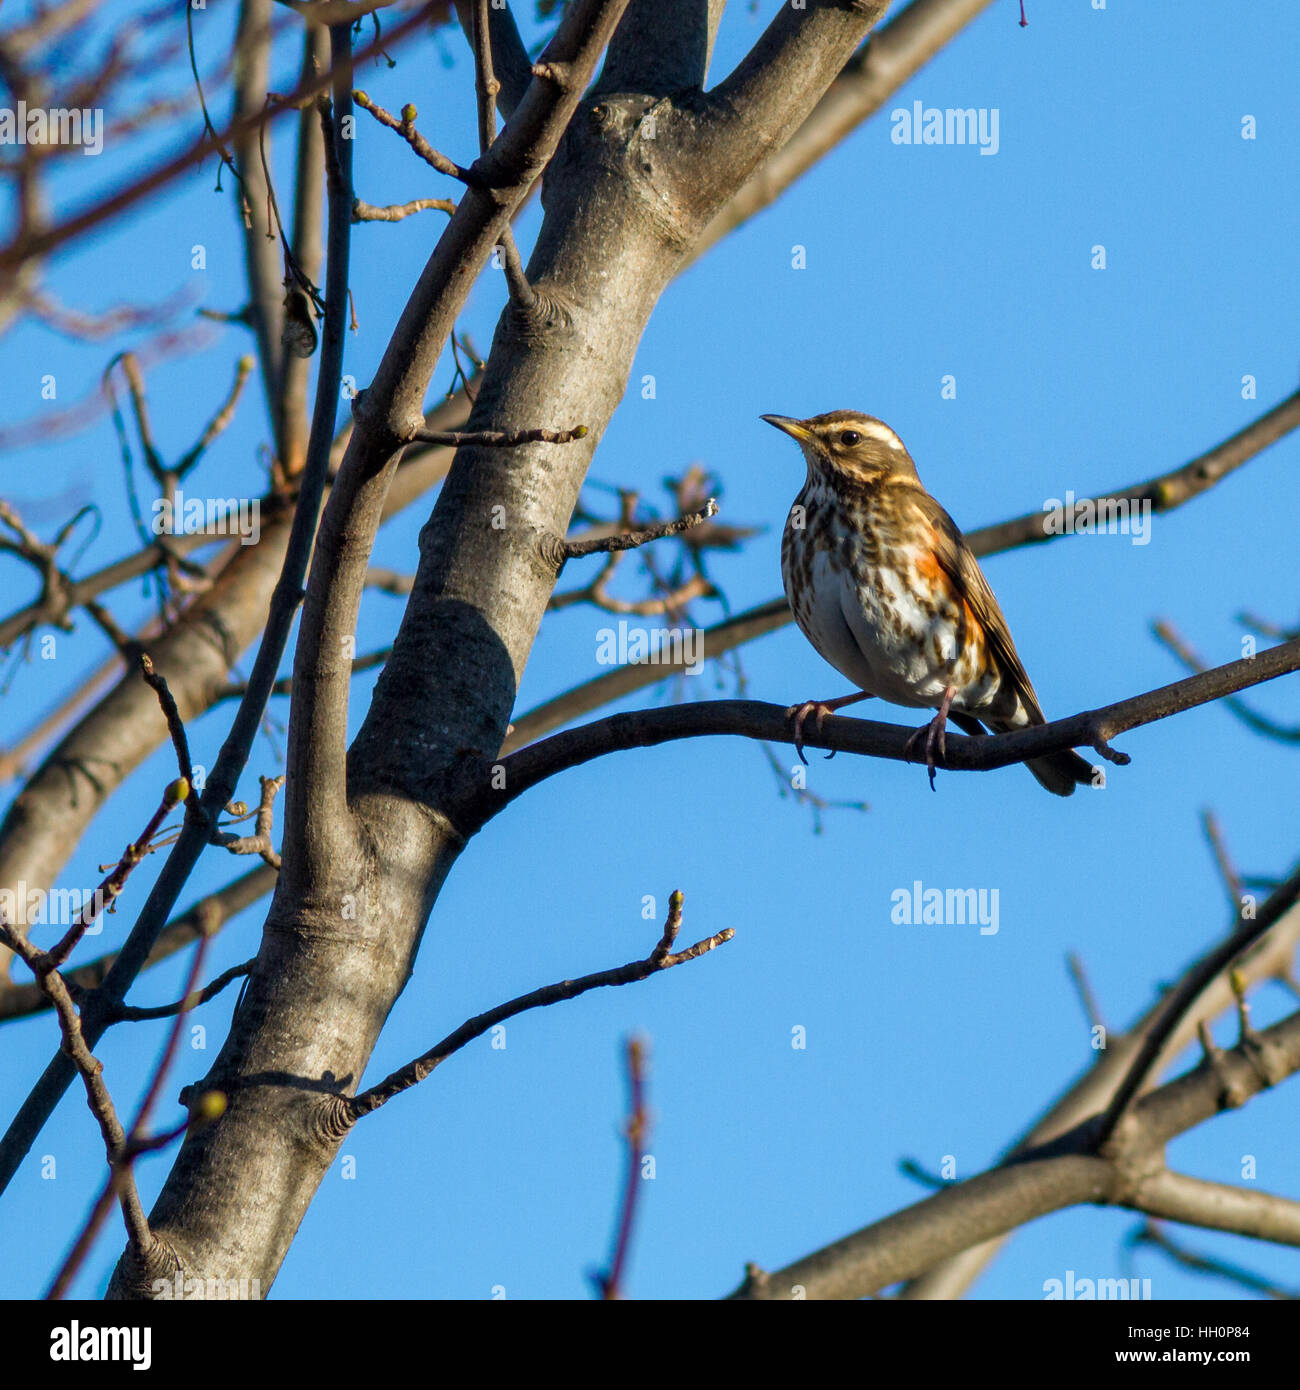 A migrant redwing perched on a tree in the centre of Ilkley, Yorkshire, UK - Stock Image